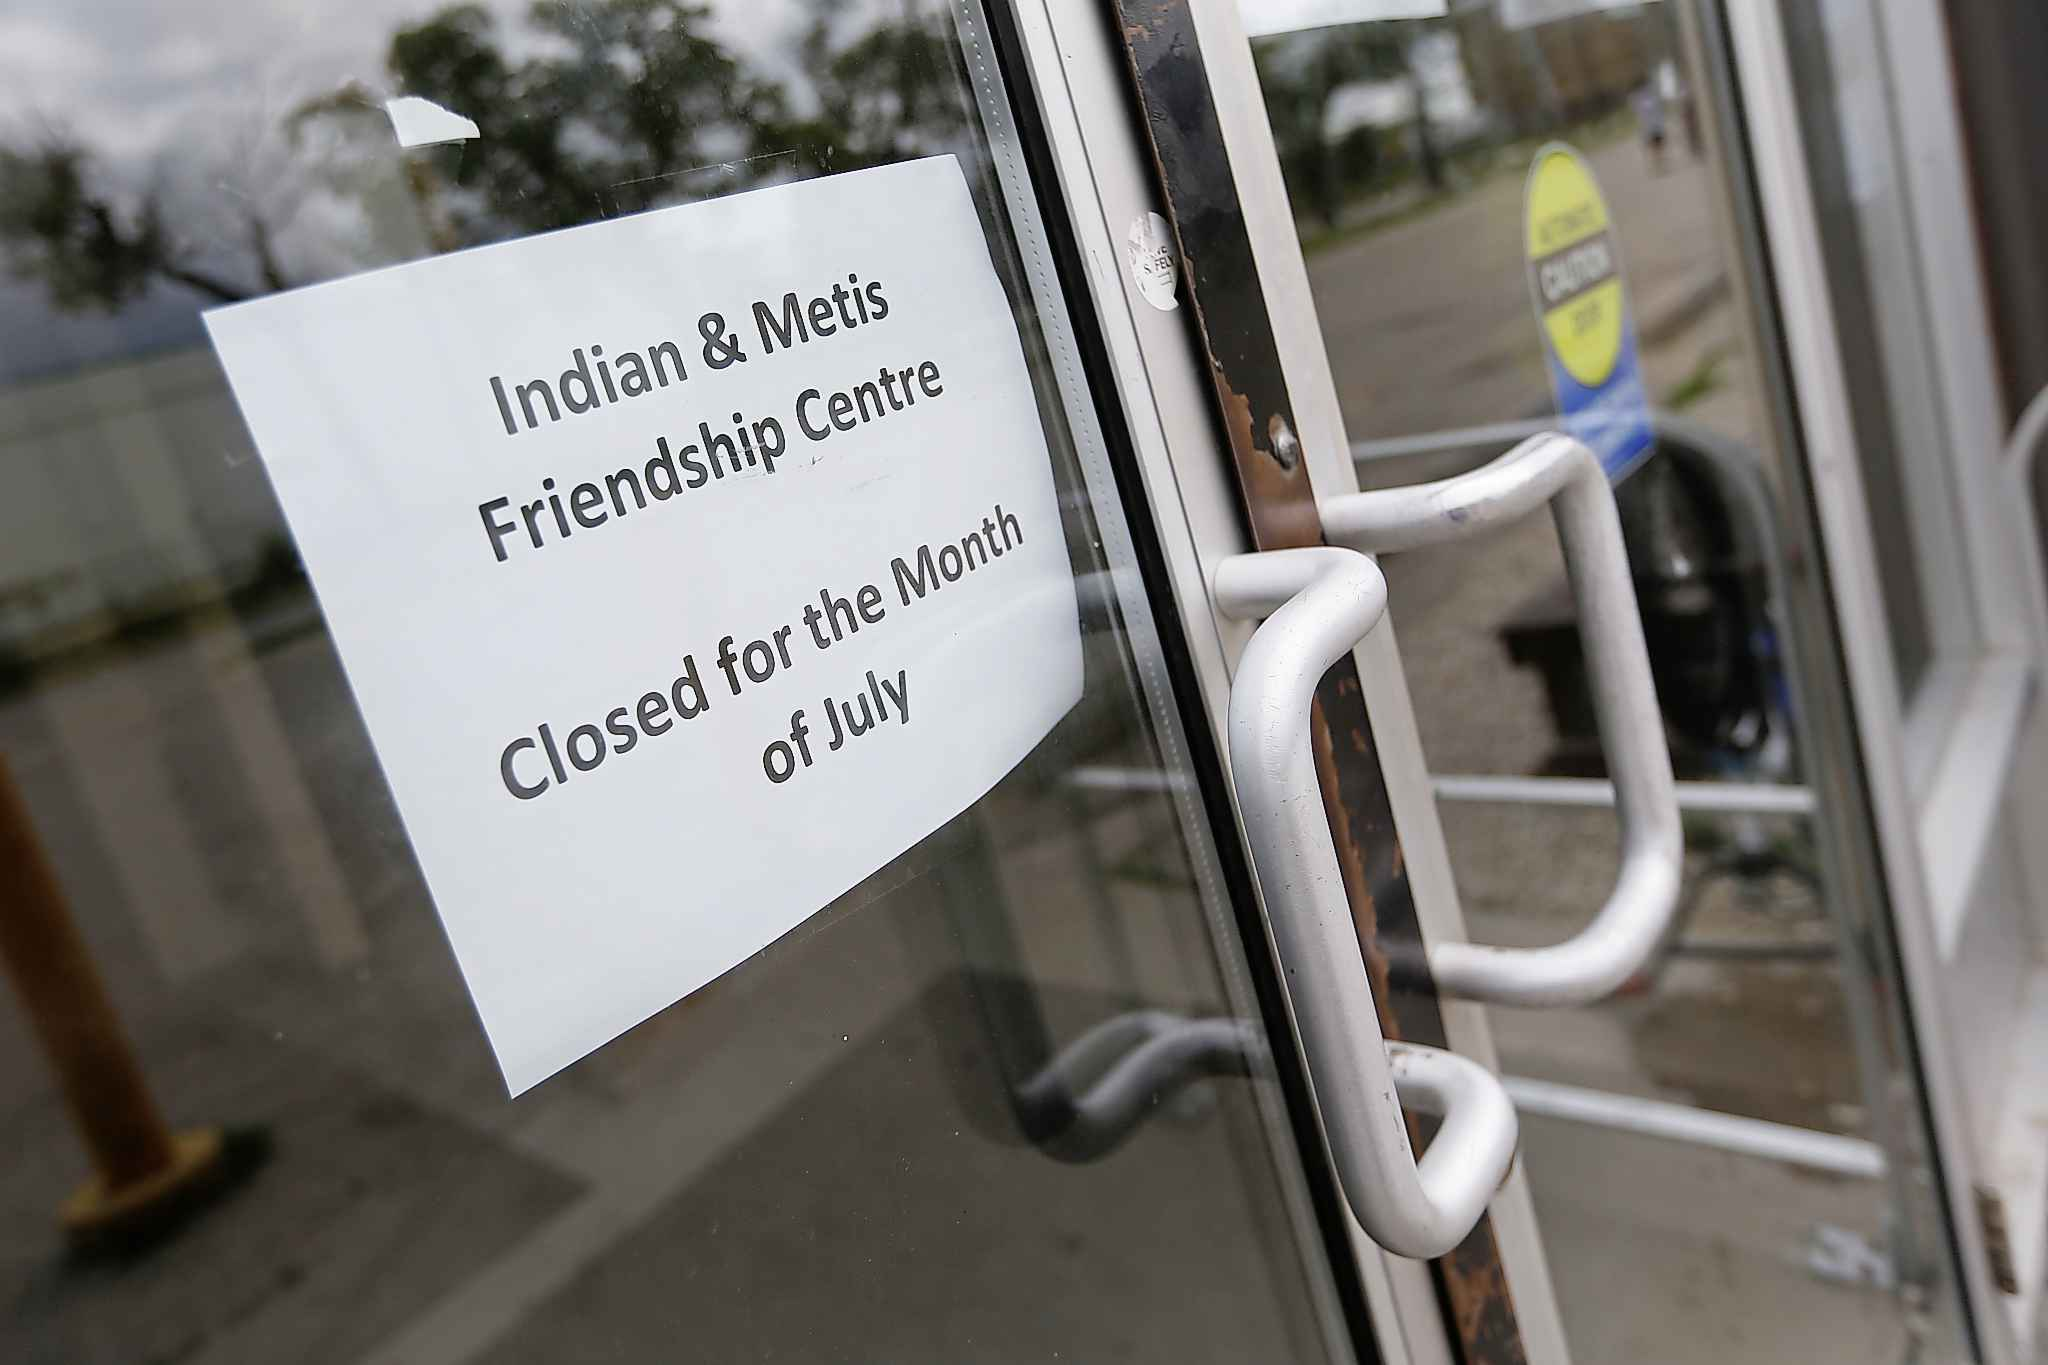 Indian and Metis Friendship Centre closed its doors after having its funding suspended by the Manitoba Association of Friendship Centres in 2017.